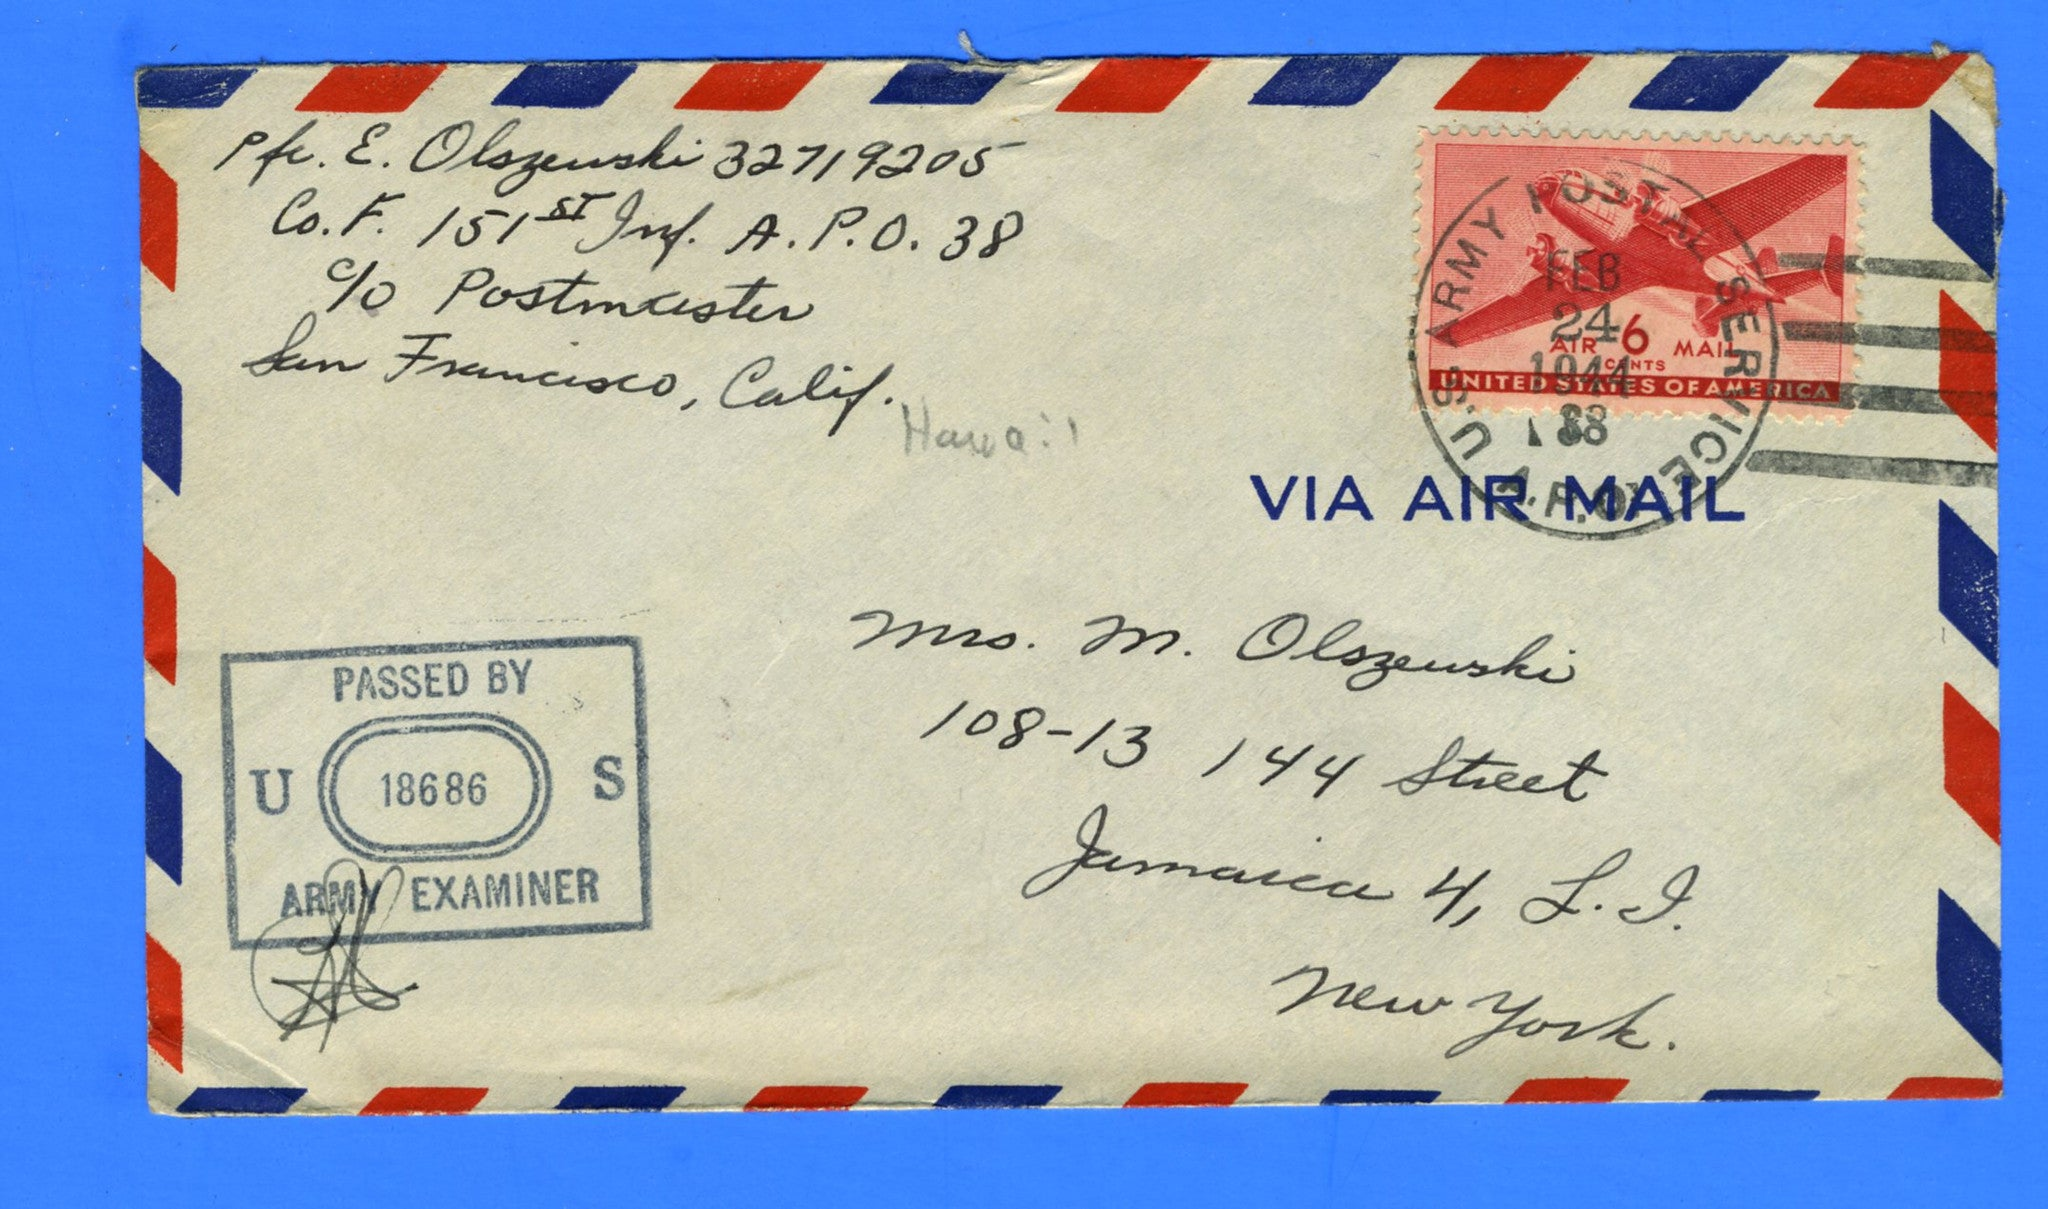 Soldier's Censored Mail APO 38 Aiea, Oahu, Hawaii February 24, 1944